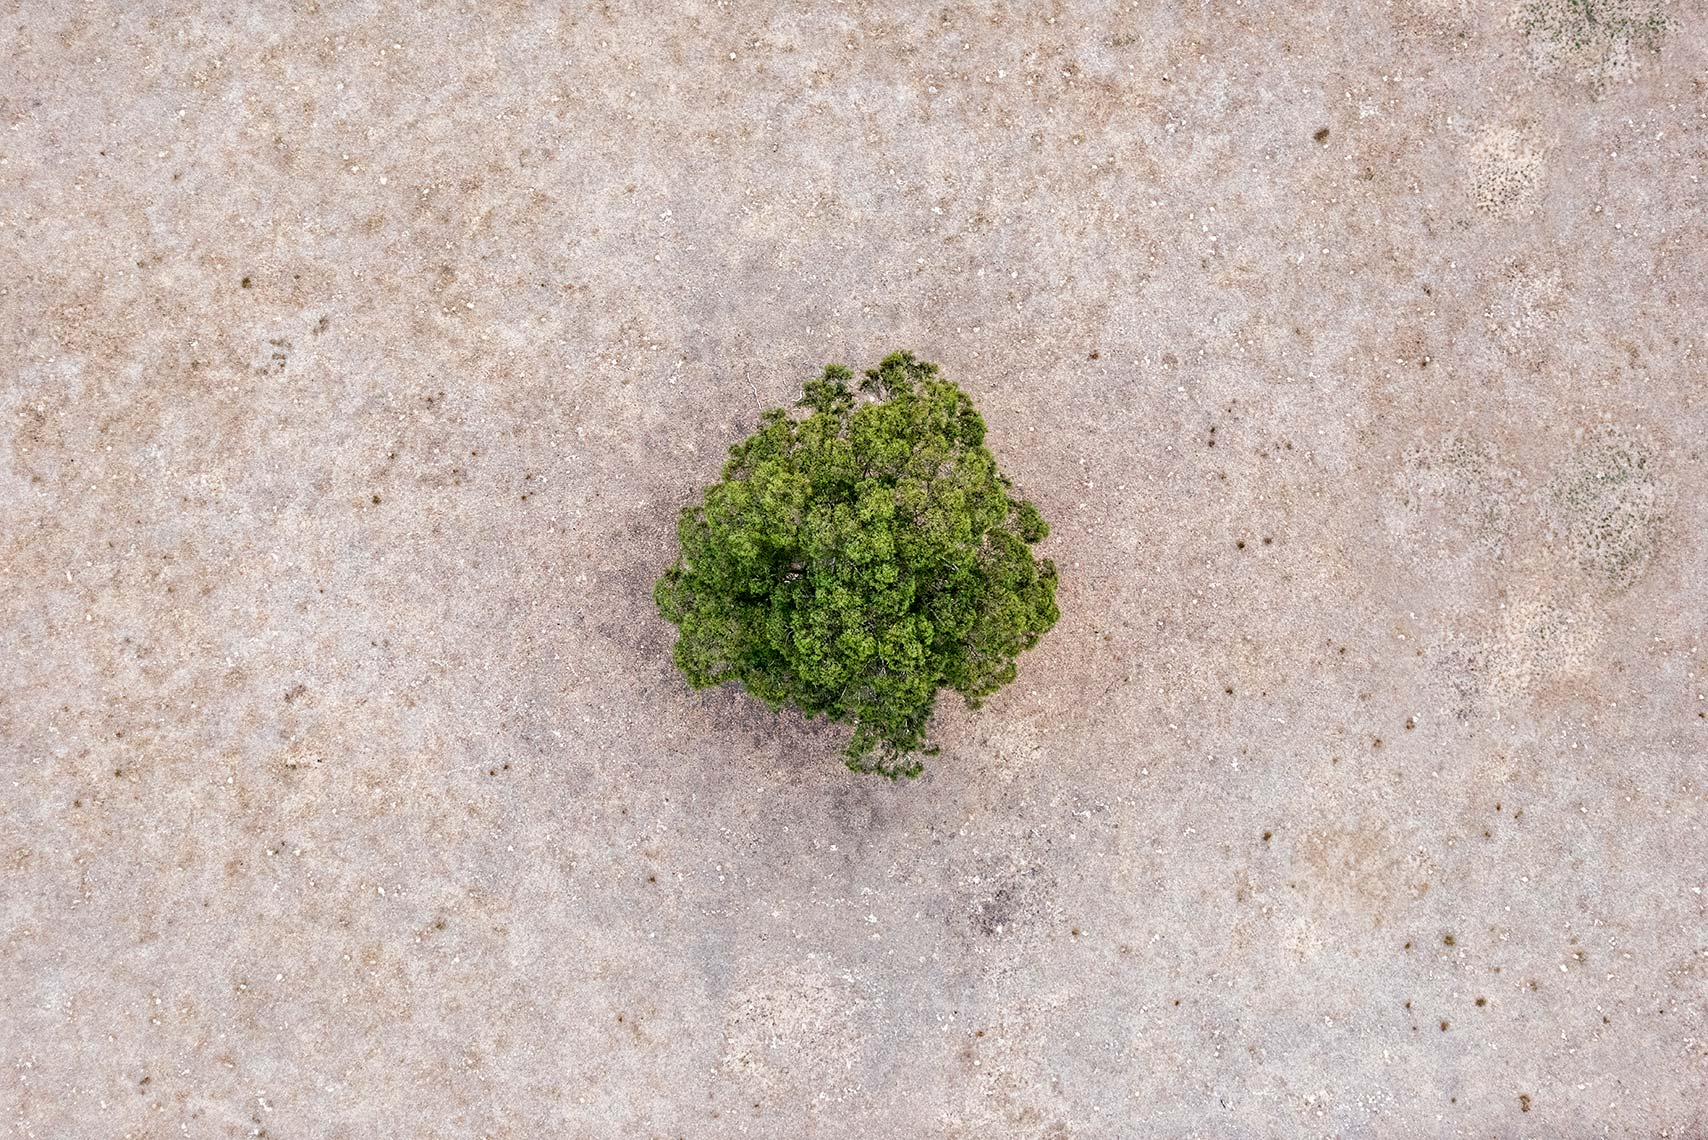 Zoe Wetherall / Aerial Landscape / Single Tree